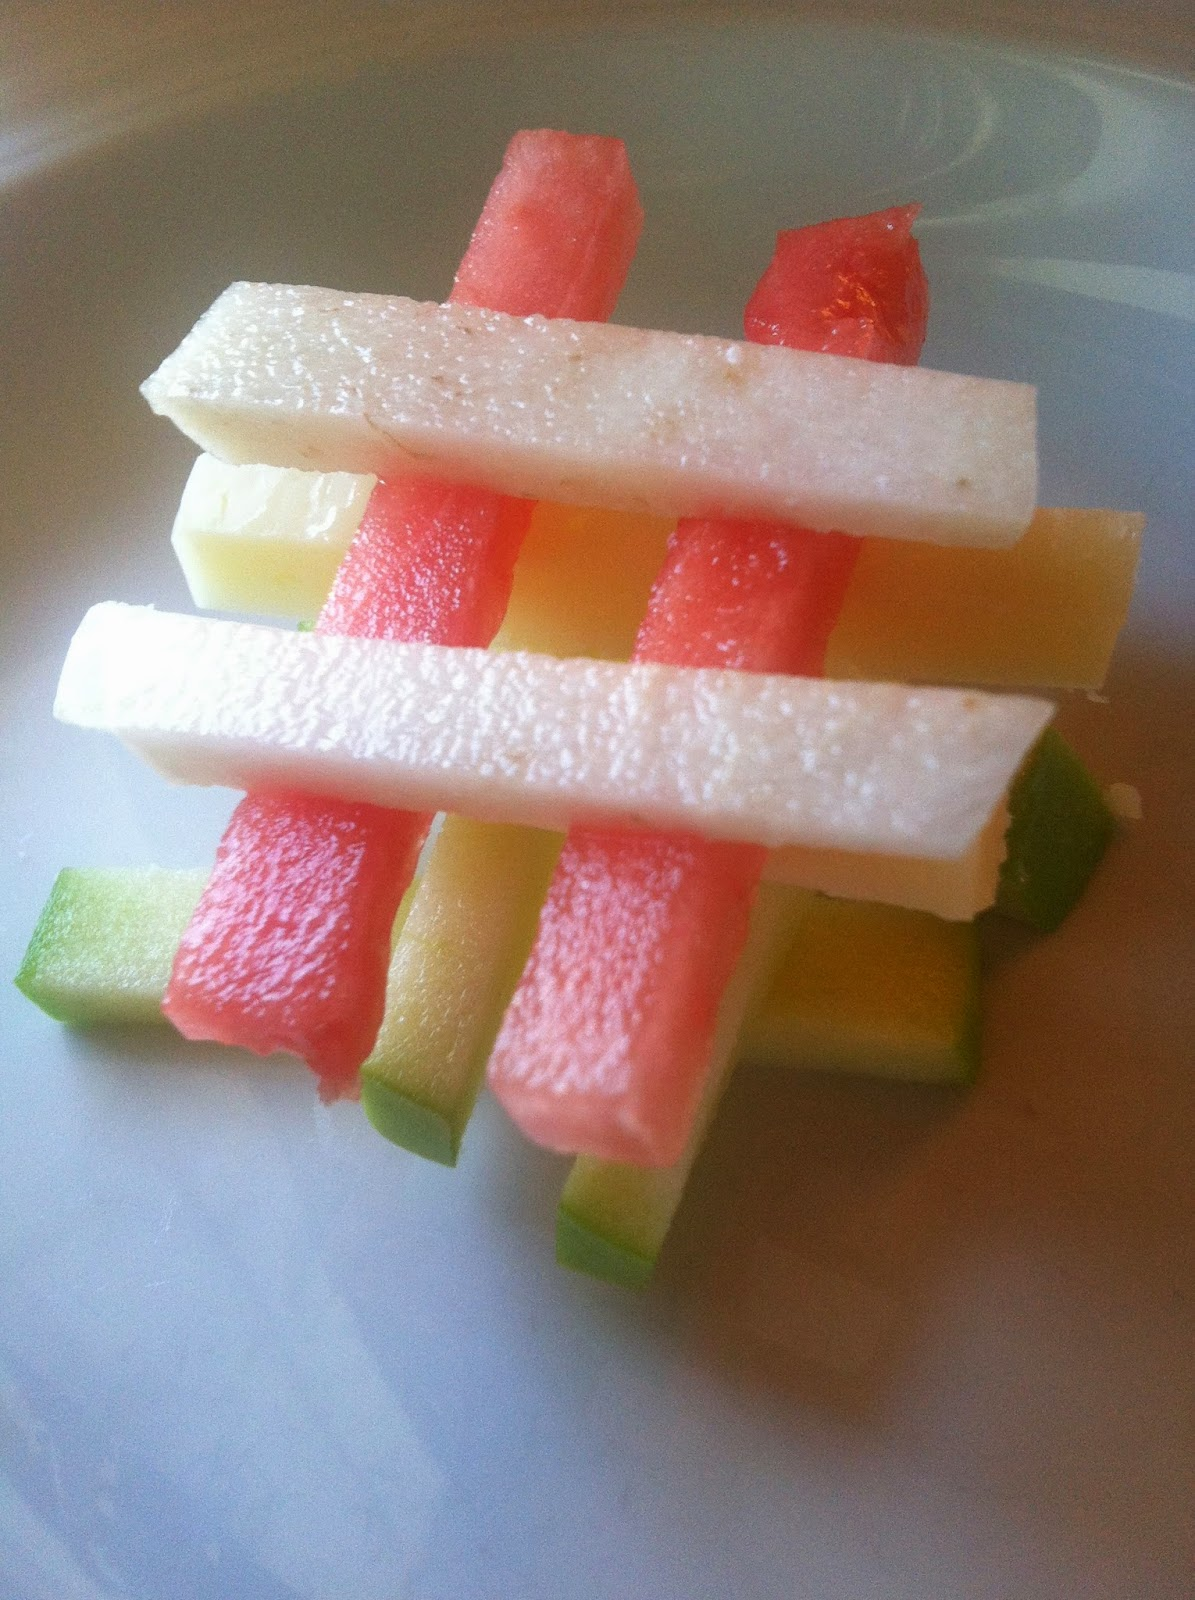 http://foodfitforkids.blogspot.com/2014/04/jicama-fruit-salad-and-trying-new-foods.html